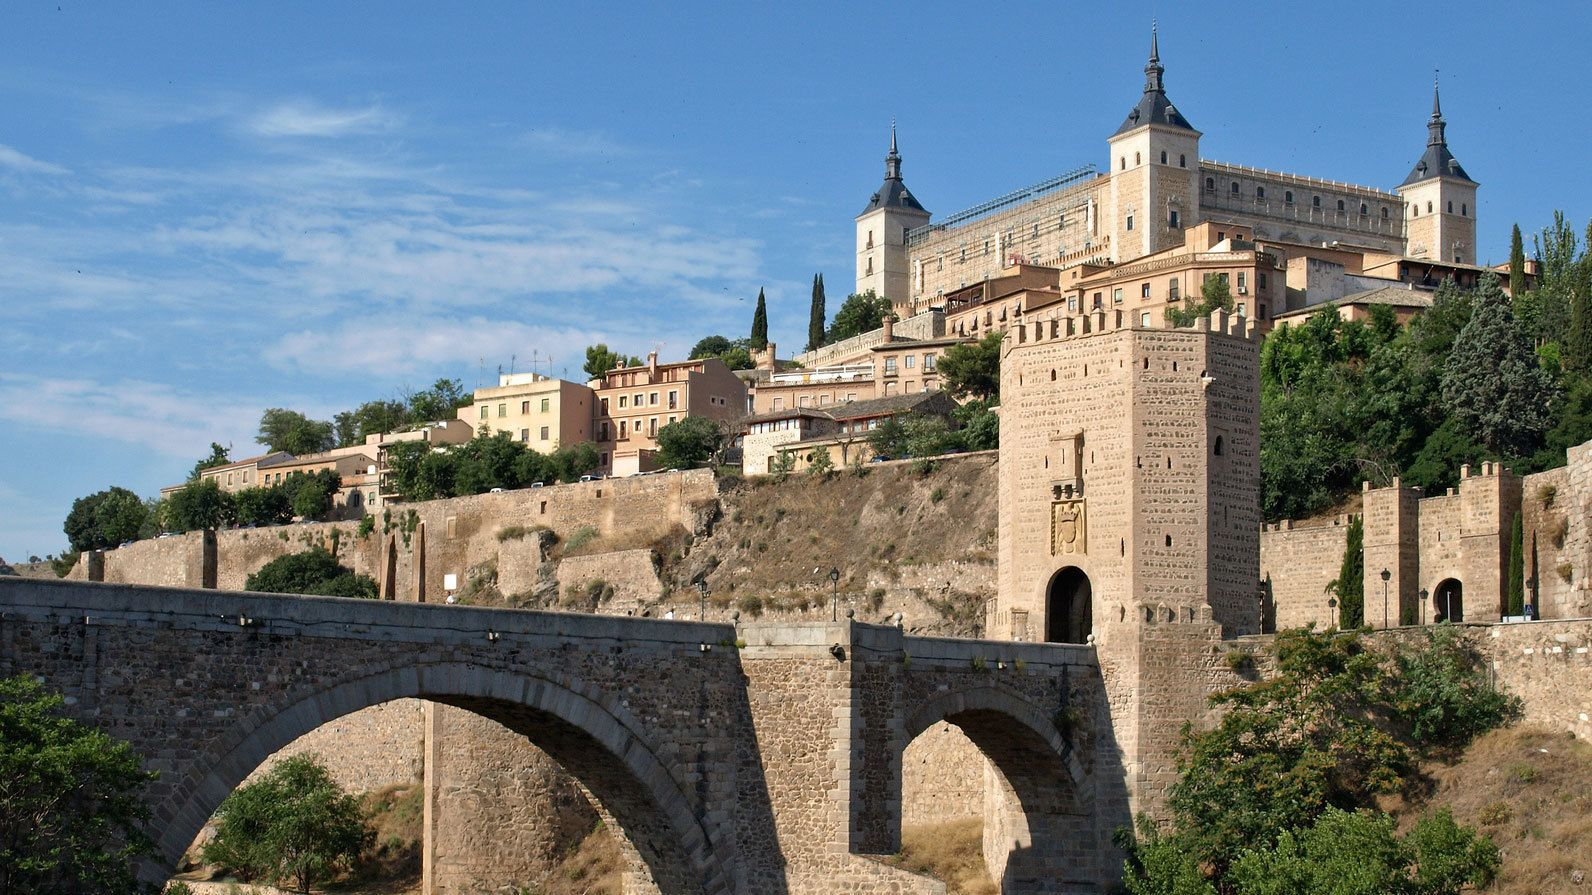 Bridge and buildings in Spain during the day